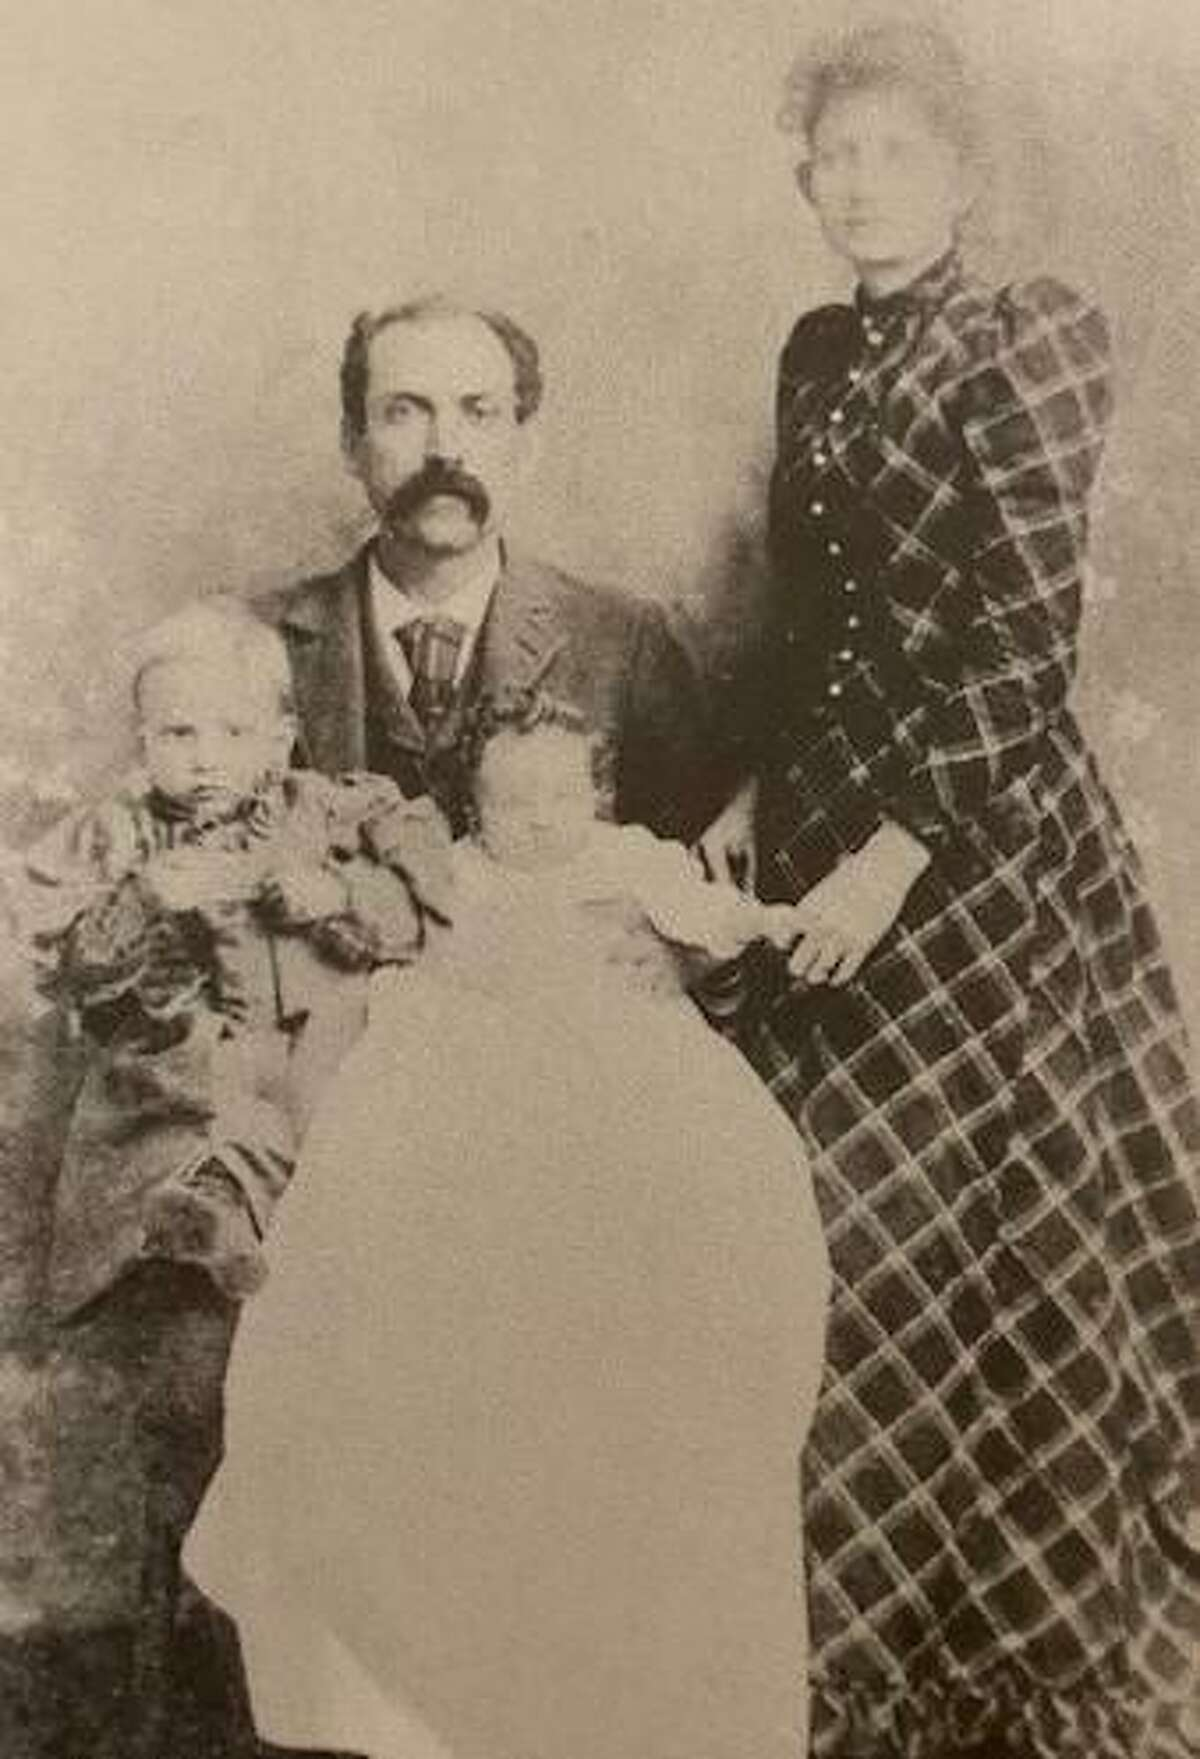 John B. Addison and wife Martha Davis Addison and their son Hart Addison and a baby who died in 1891.